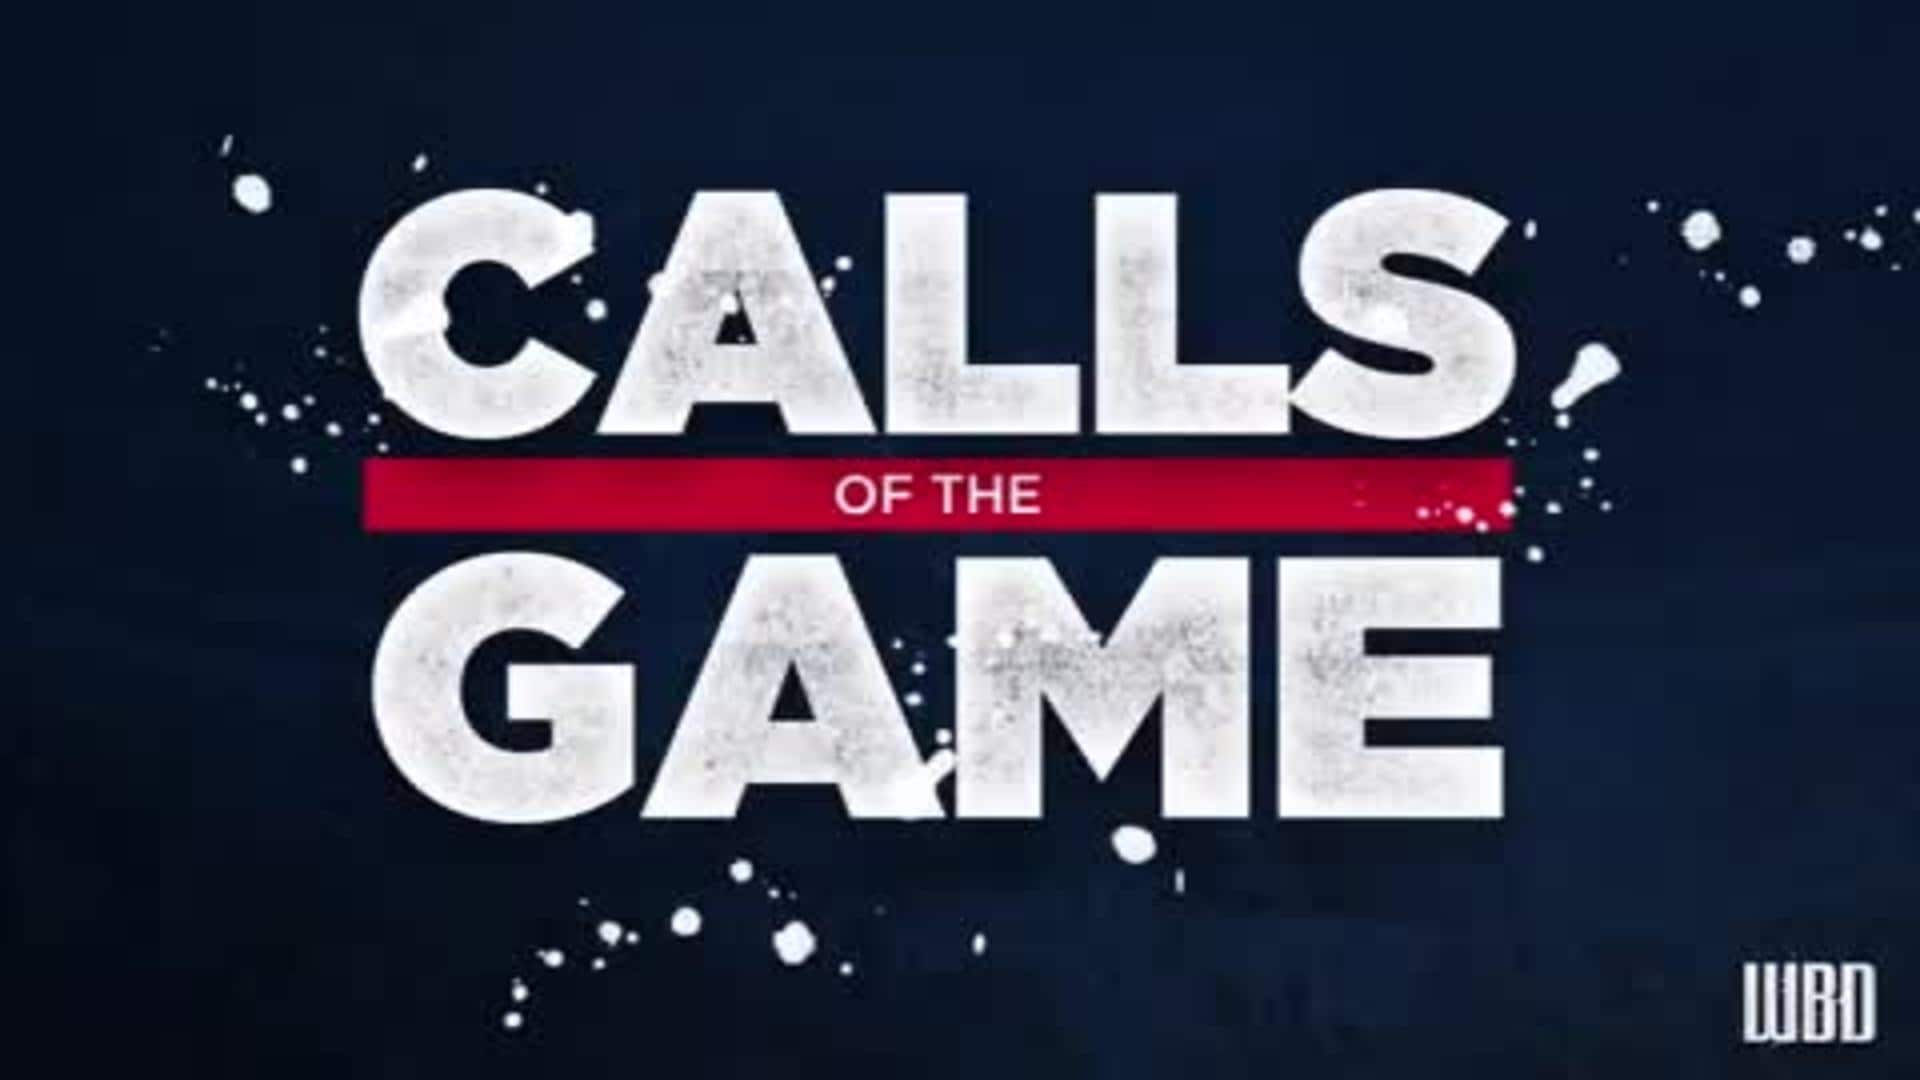 Calls of the Game: New Orleans Pelicans vs Golden State Warriors - Game 57 - Feb. 23, 2020